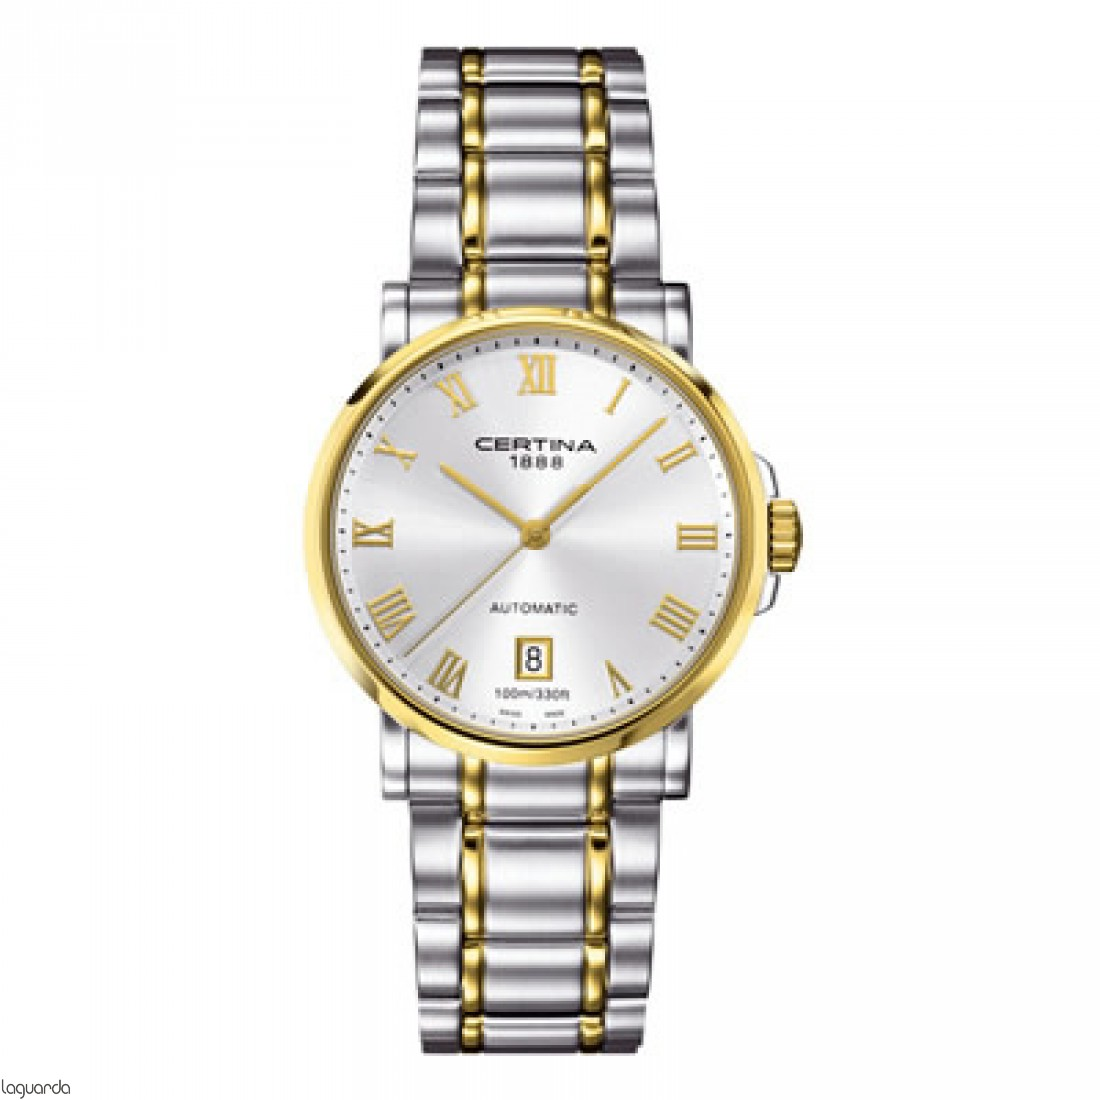 C017.407.22.027.00 Certina DS Caimano Gent Automatic Laguarda Joiers.com